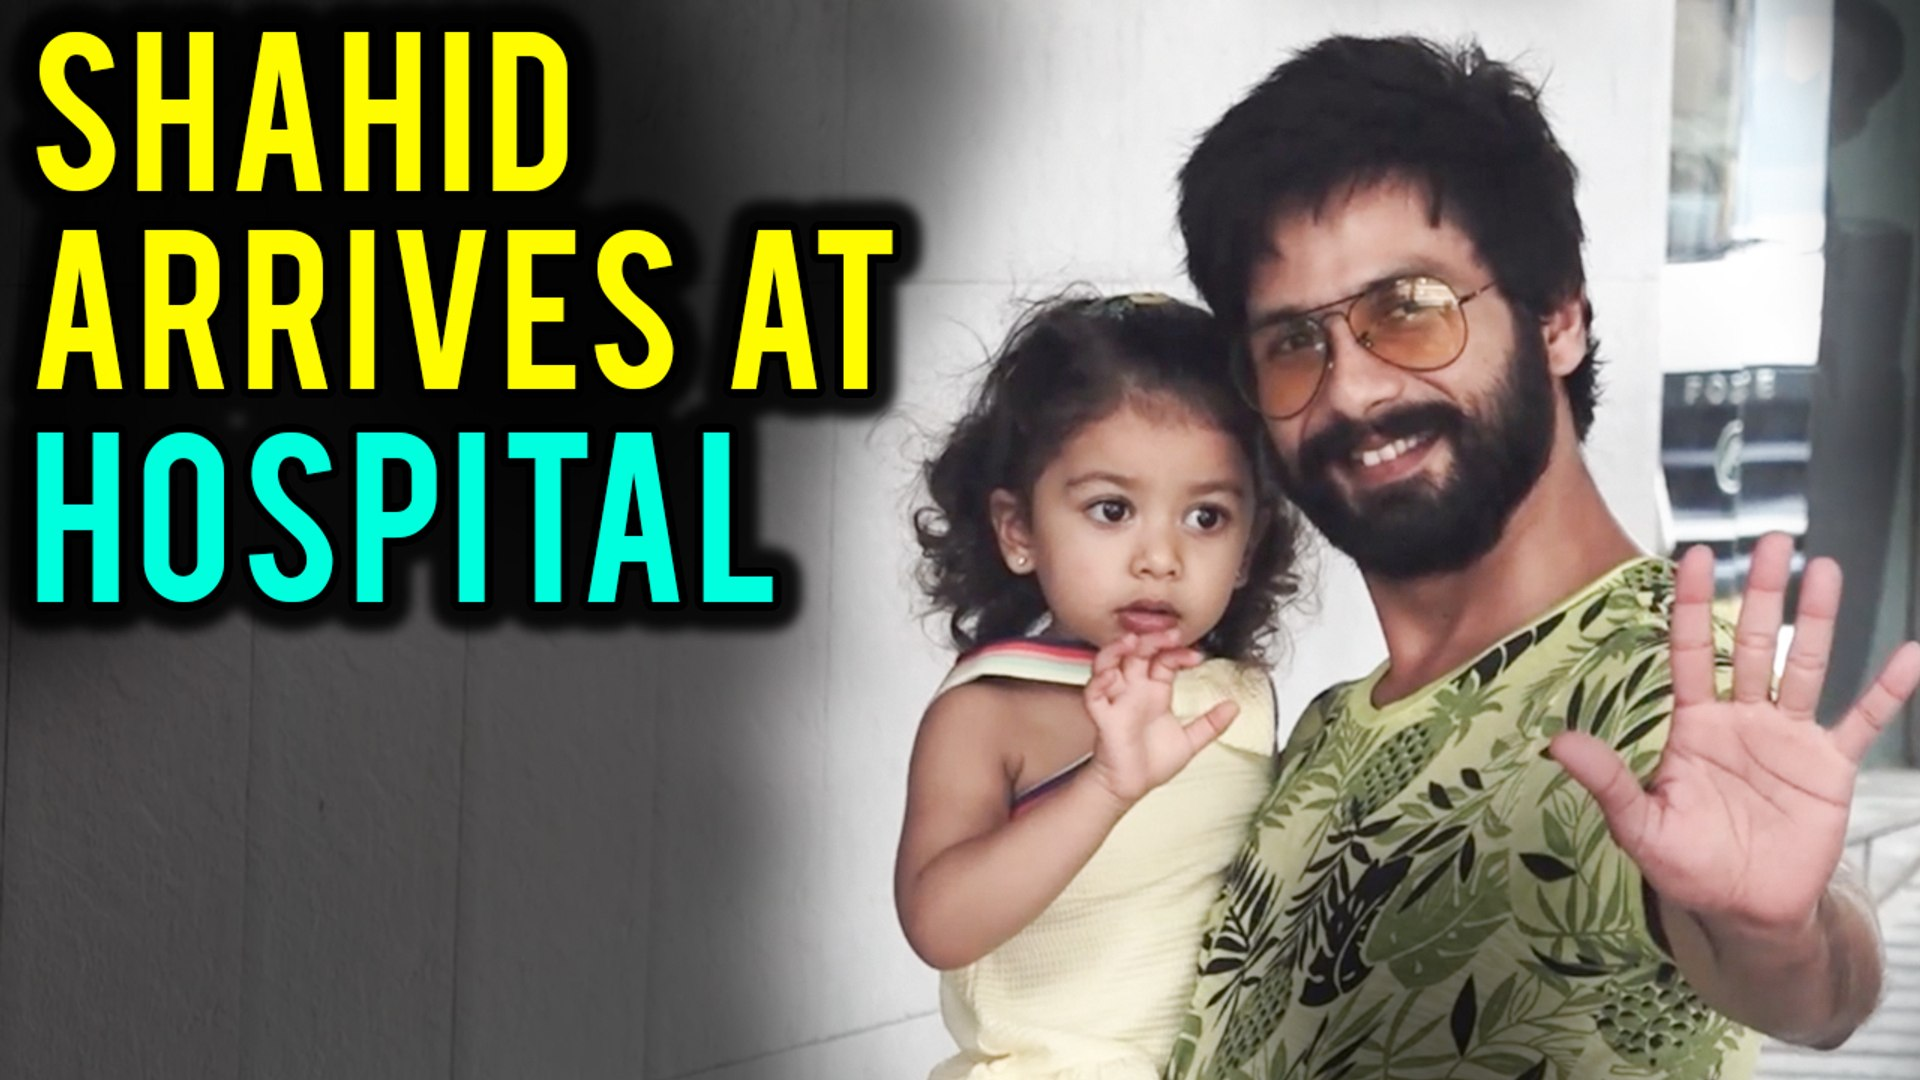 Shahid Kapoor Reaches Hospital To Meet Mira Rajput And Baby Boy | Bollywood Now